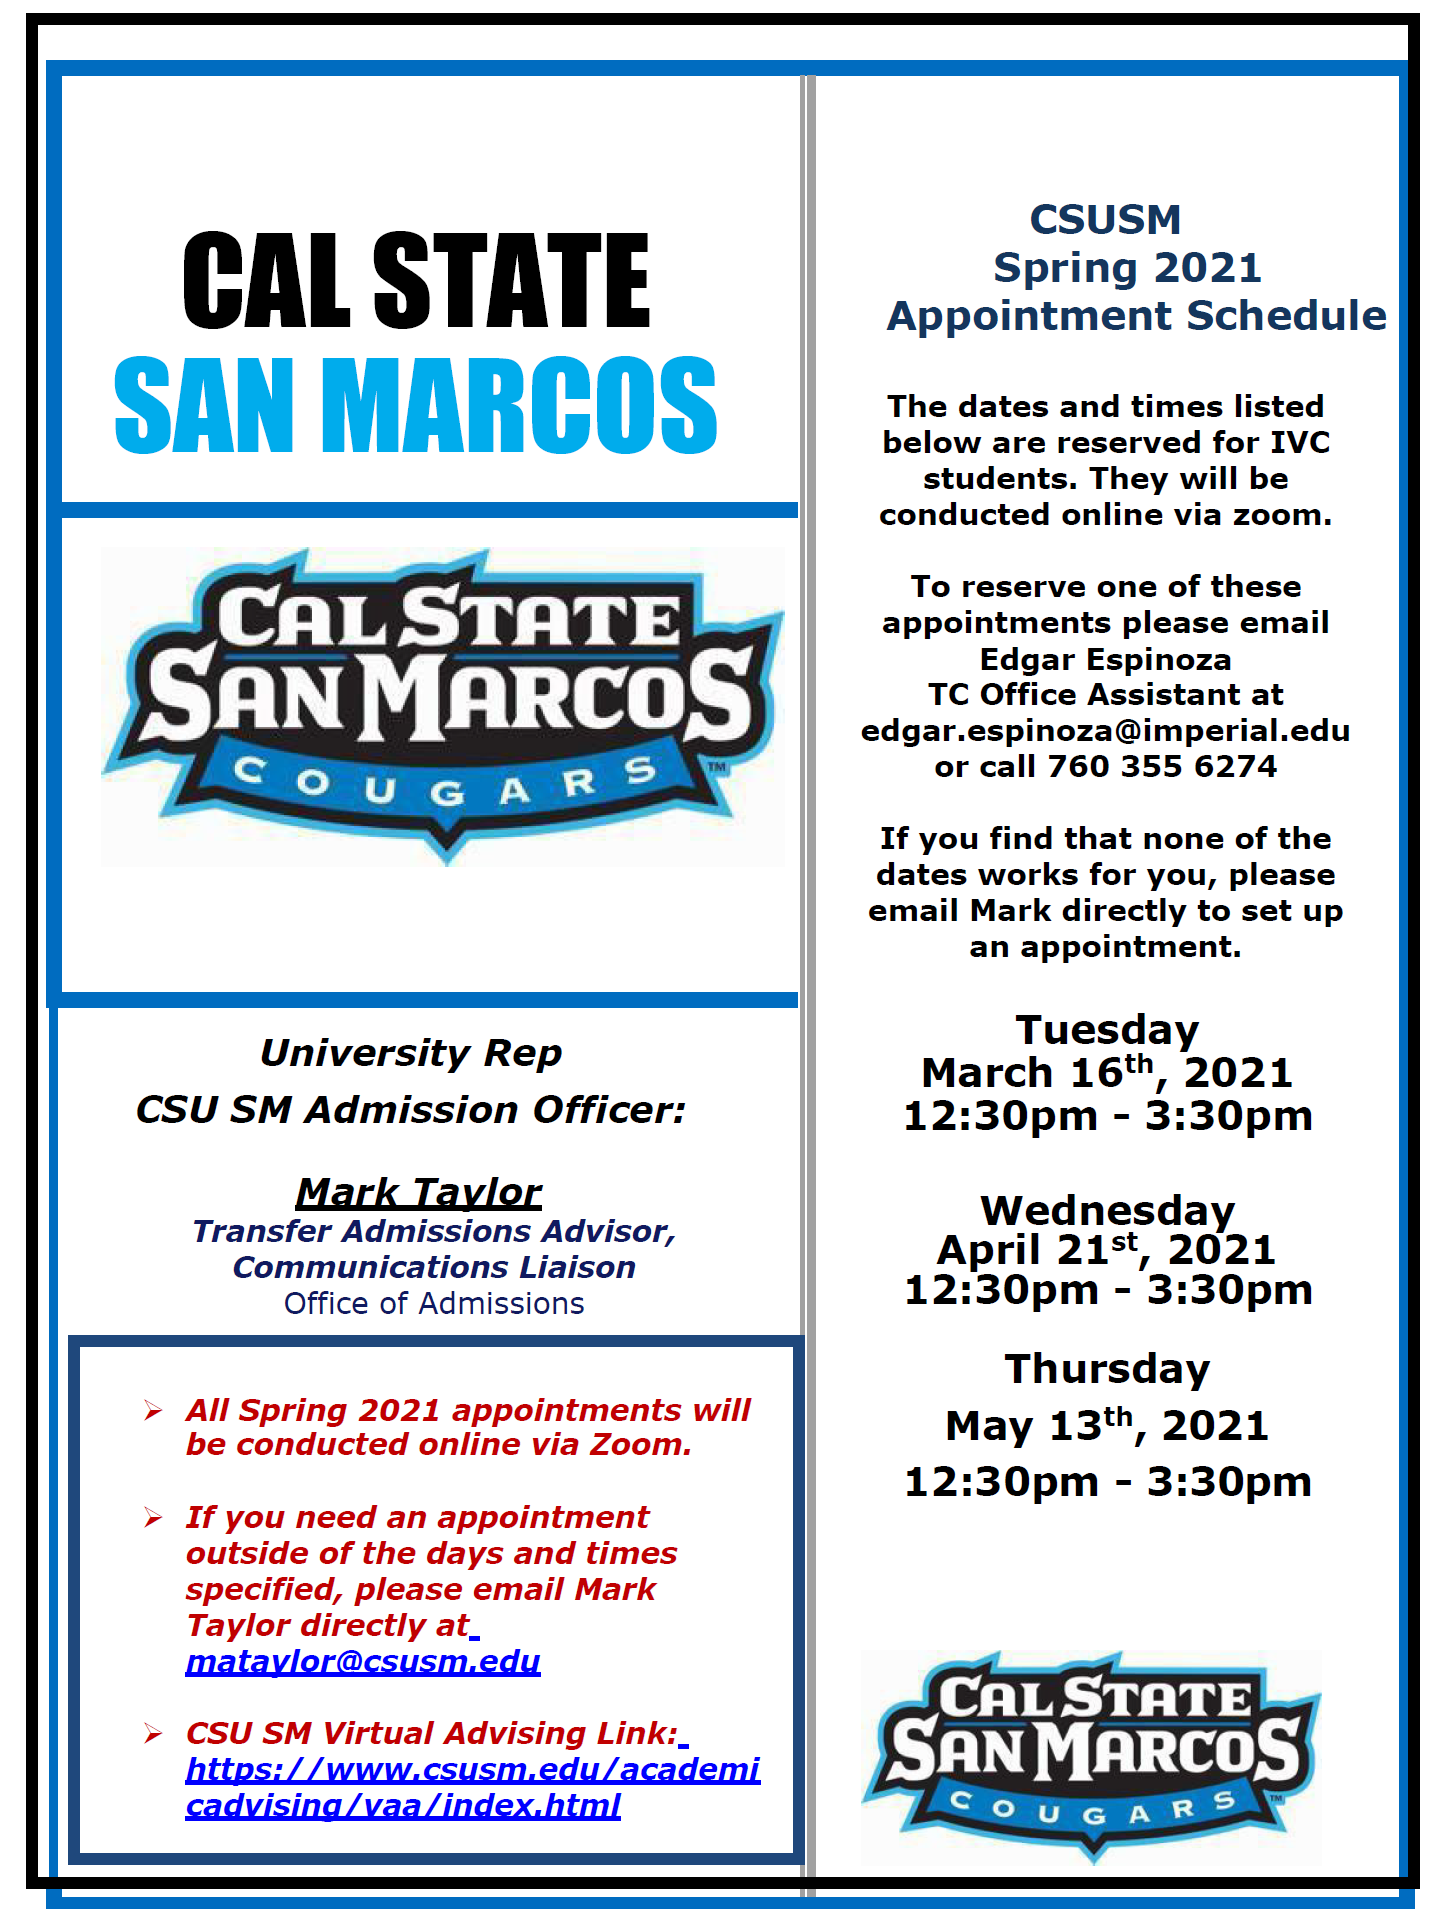 Cal State San Marcos 2